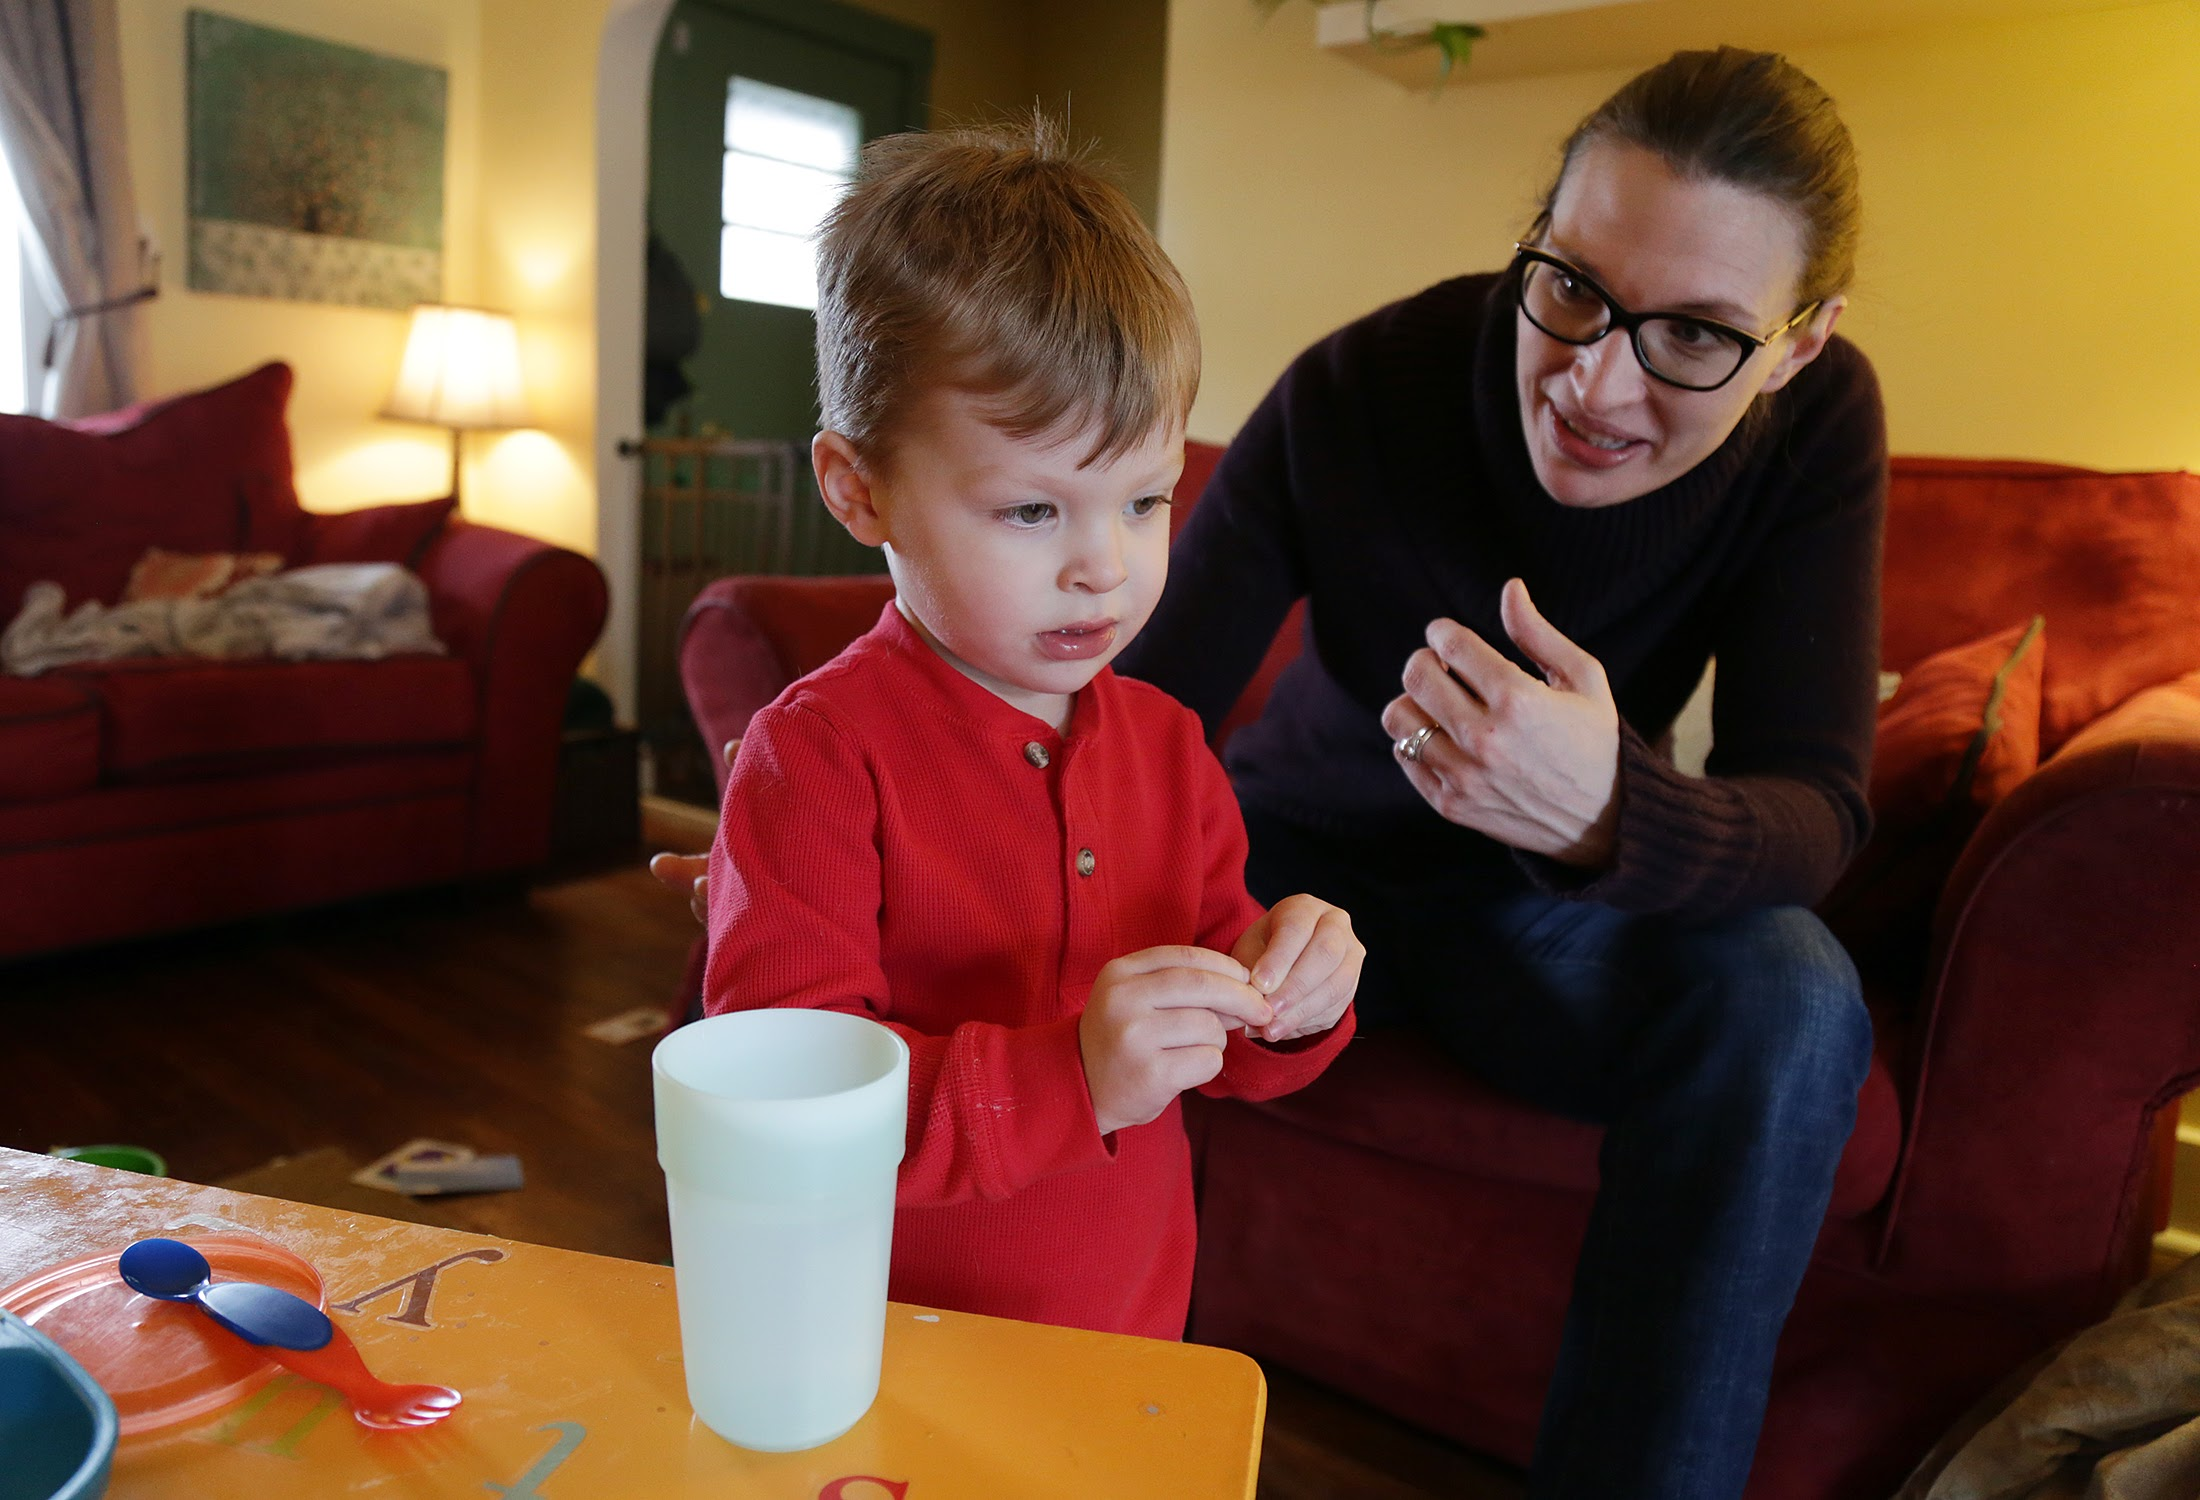 Bridget Urda, 33, spends time with her son Clayton at their home in Morningside. Urda sent her lead testing kit to the Pittsburgh Water and Sewer Authority on Aug. 9, 2016. The test would later show her water contained 16.4 parts per billion of lead — 1.4 ppb above the EPA action limit. (Photo by Ryan Loew/PublicSource)